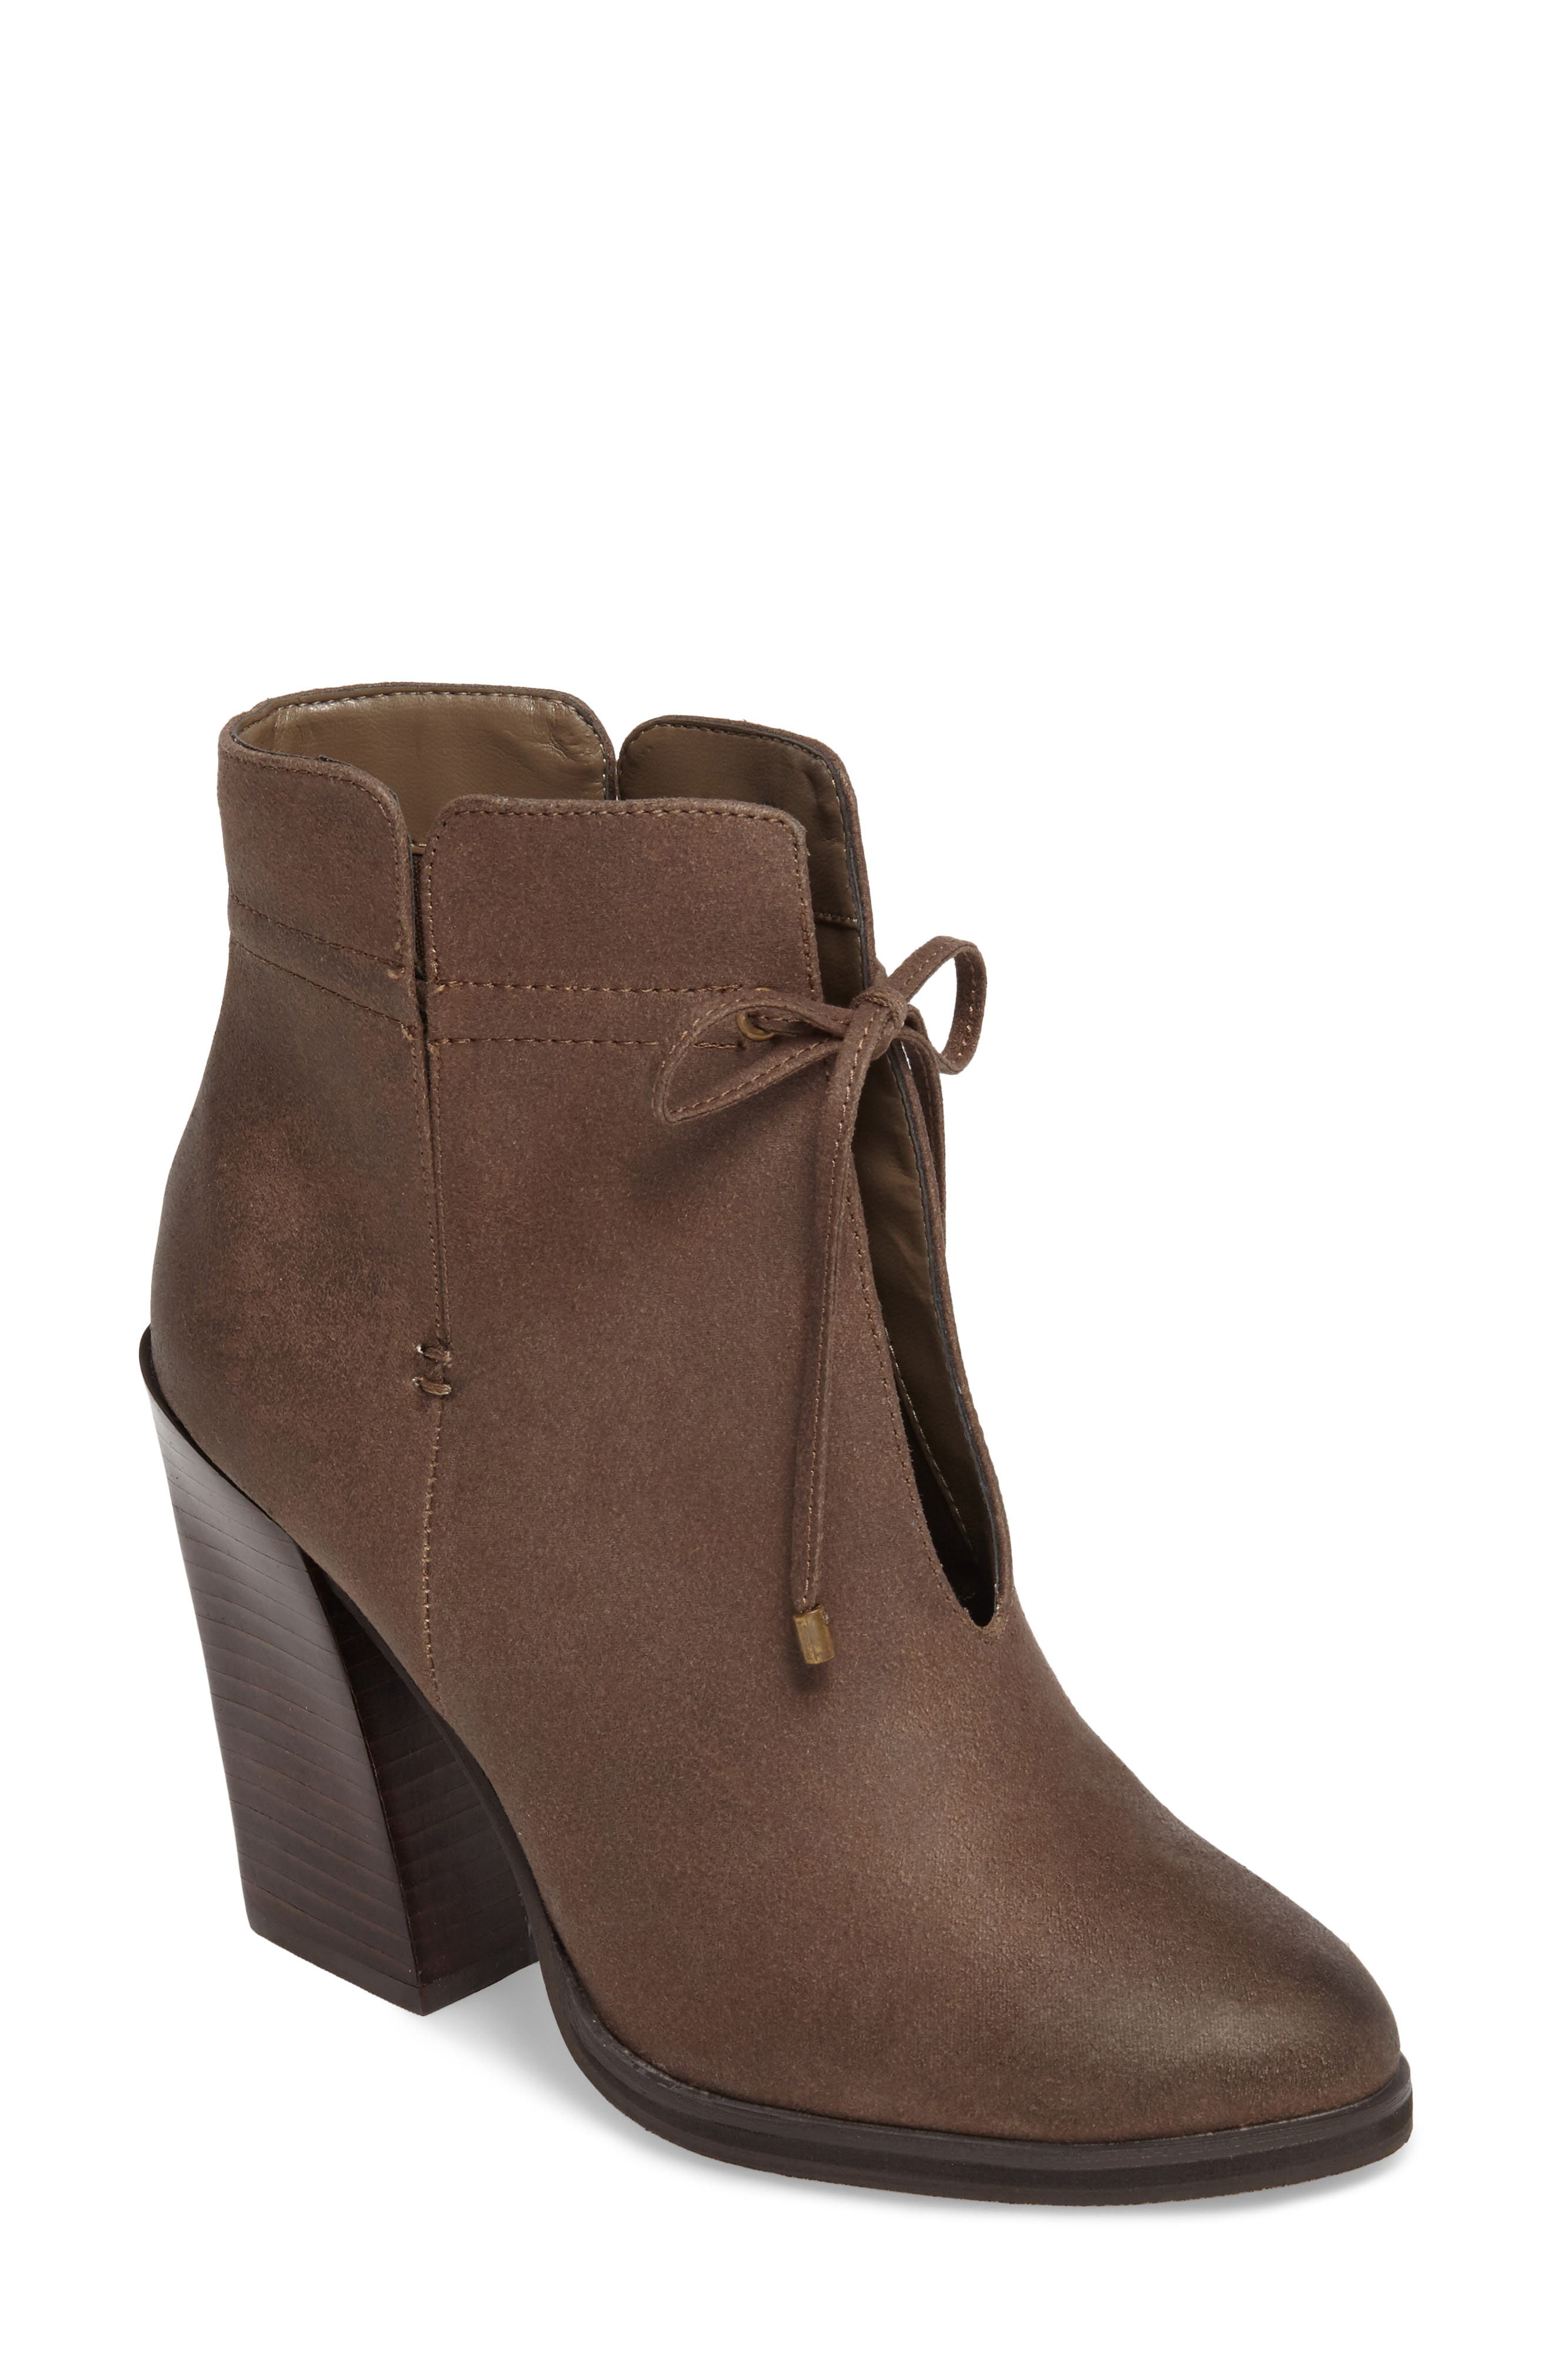 Chick Flick Bootie,                         Main,                         color, Taupe Faux Leather